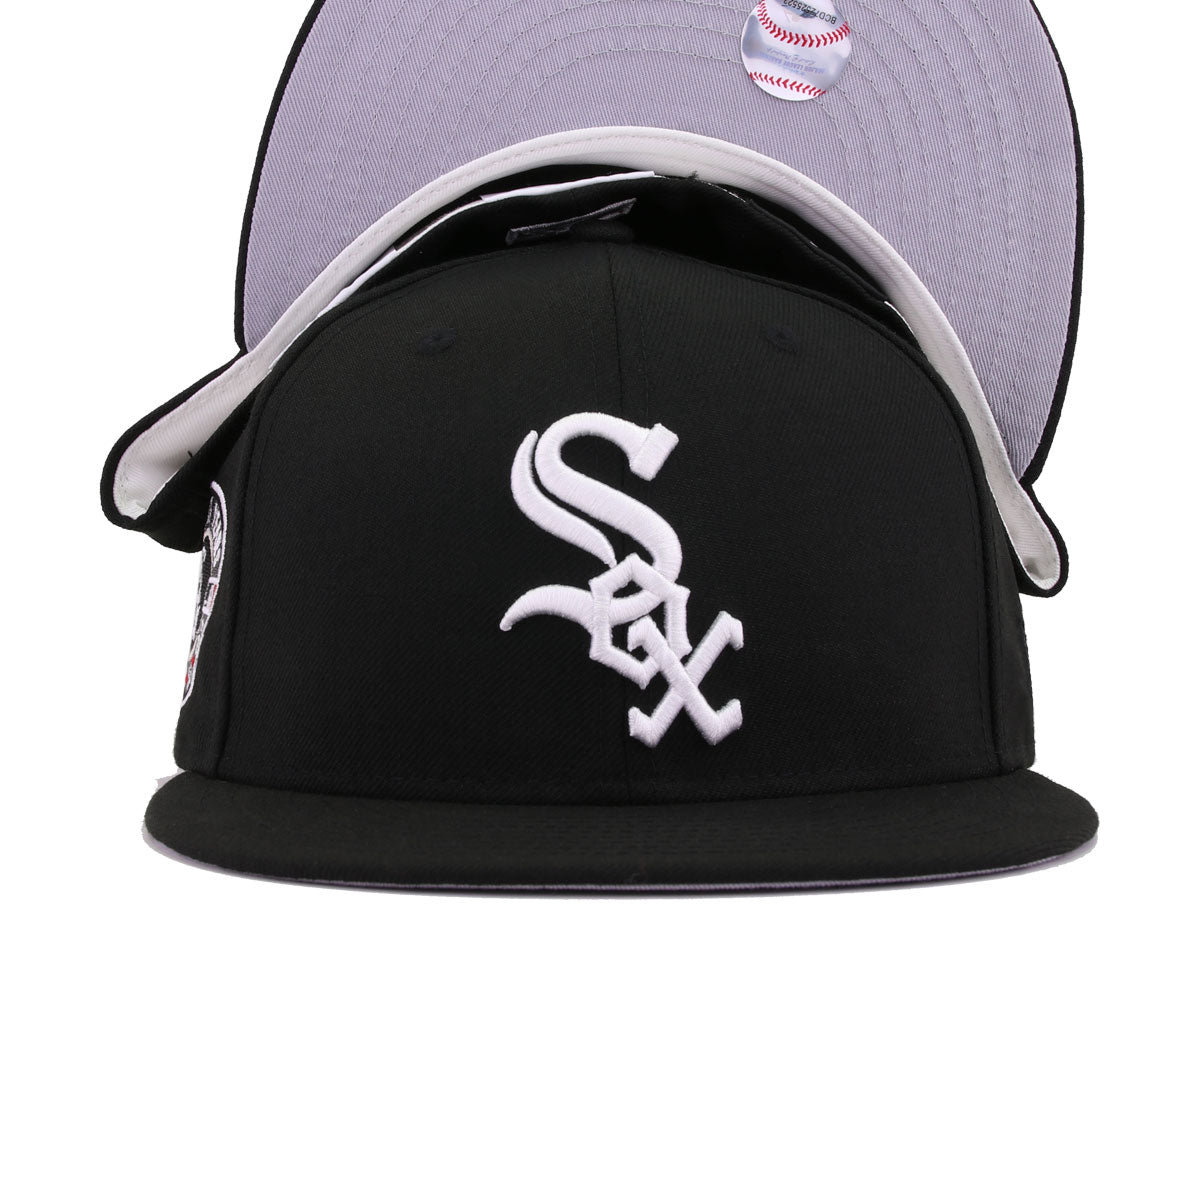 Chicago White Sox Black All Star Years New Era 59Fifty Fitted